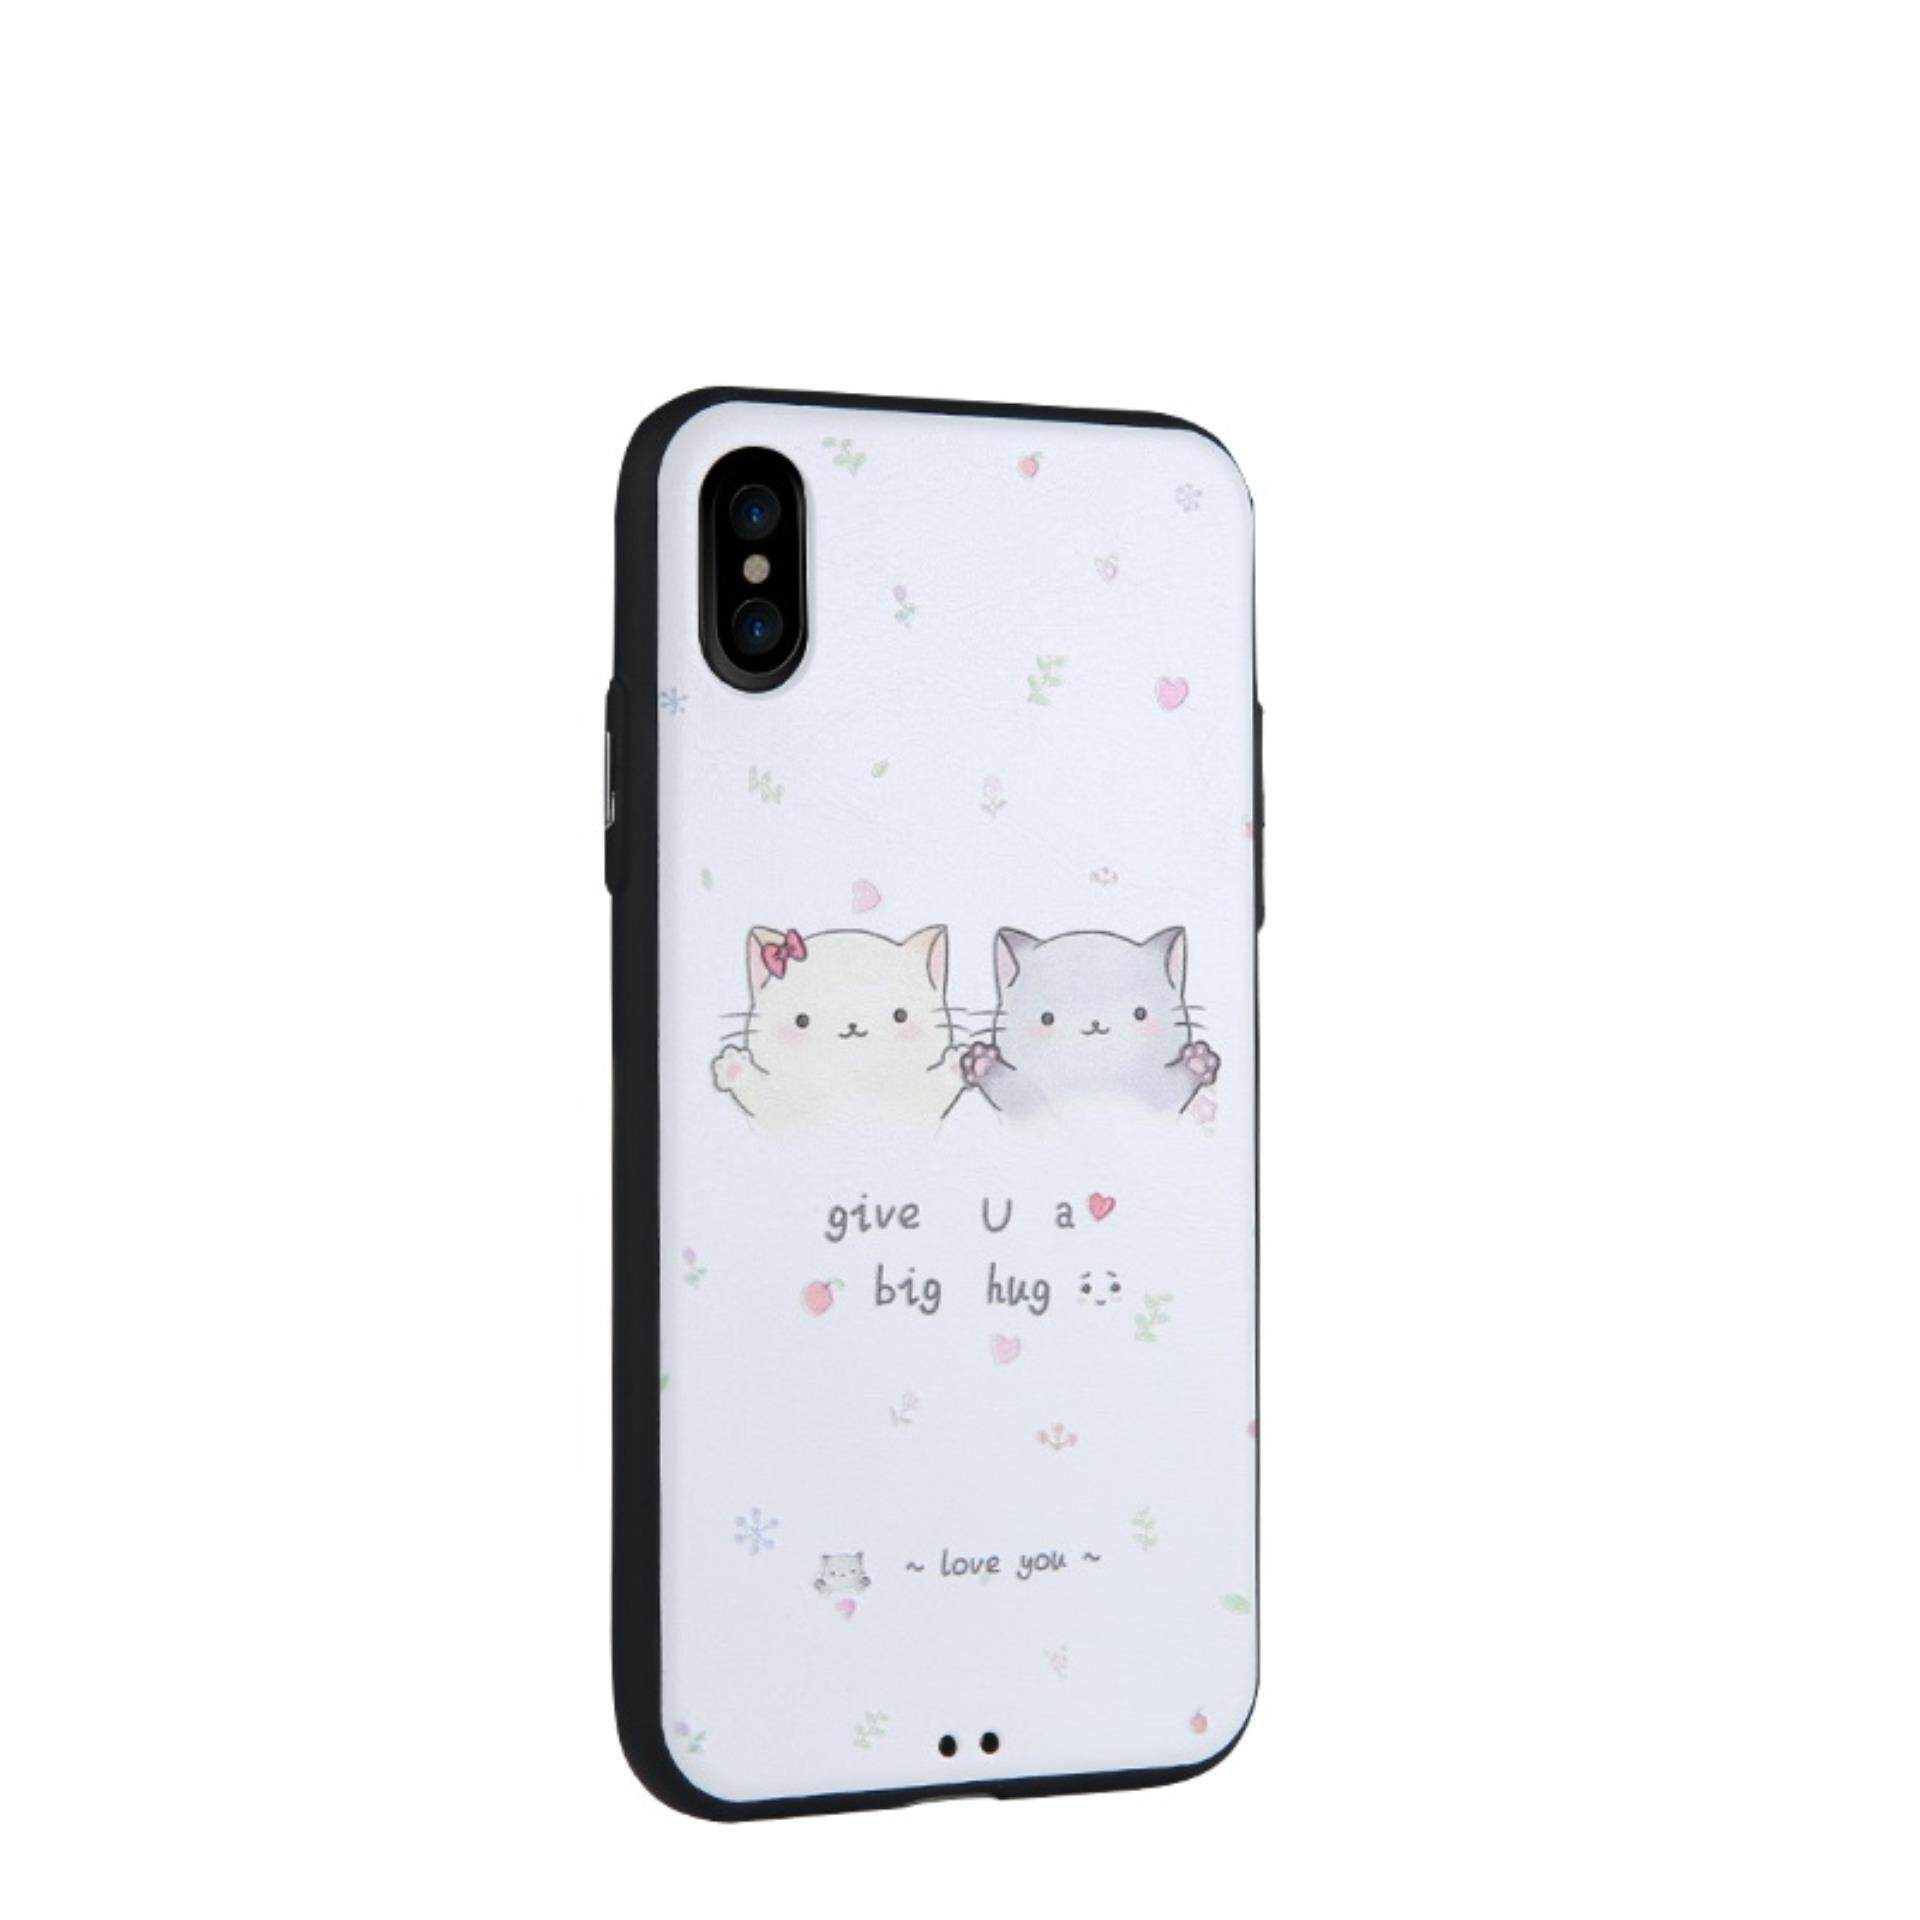 Series Protective Cover Intl; Page - 3. Bogdana for iPhone X .